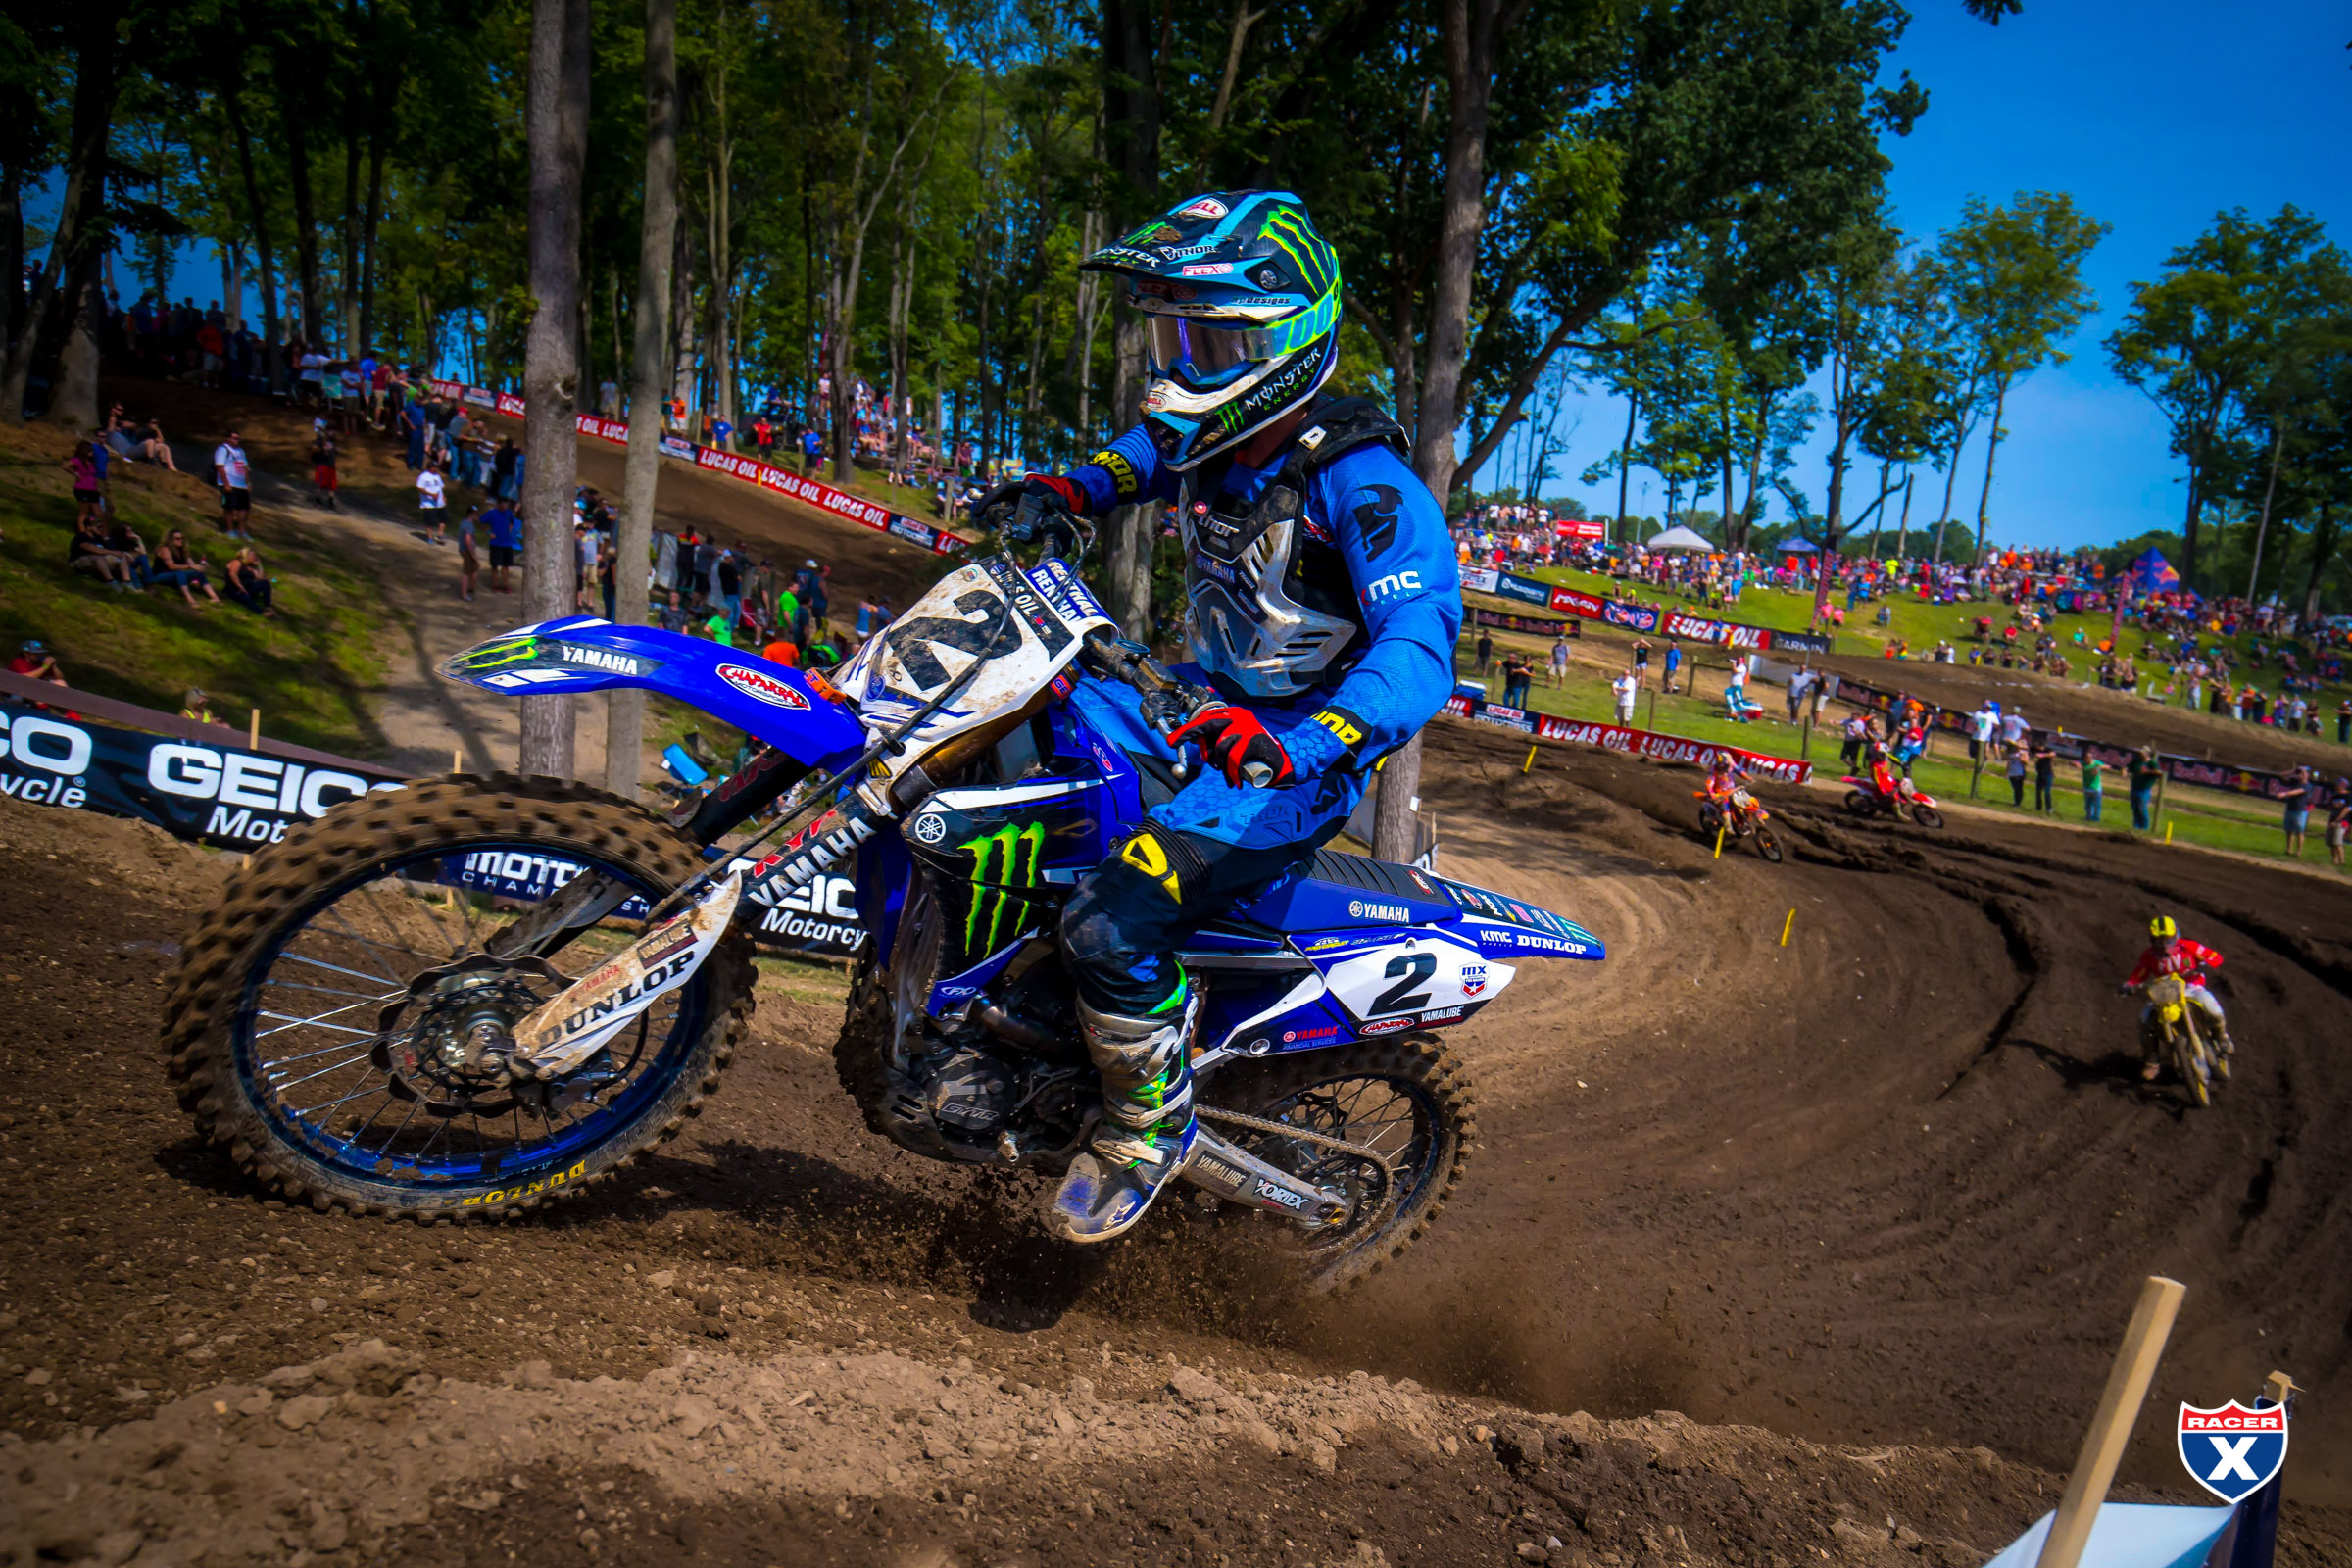 Webb_MX17_Ironman_RS_2265